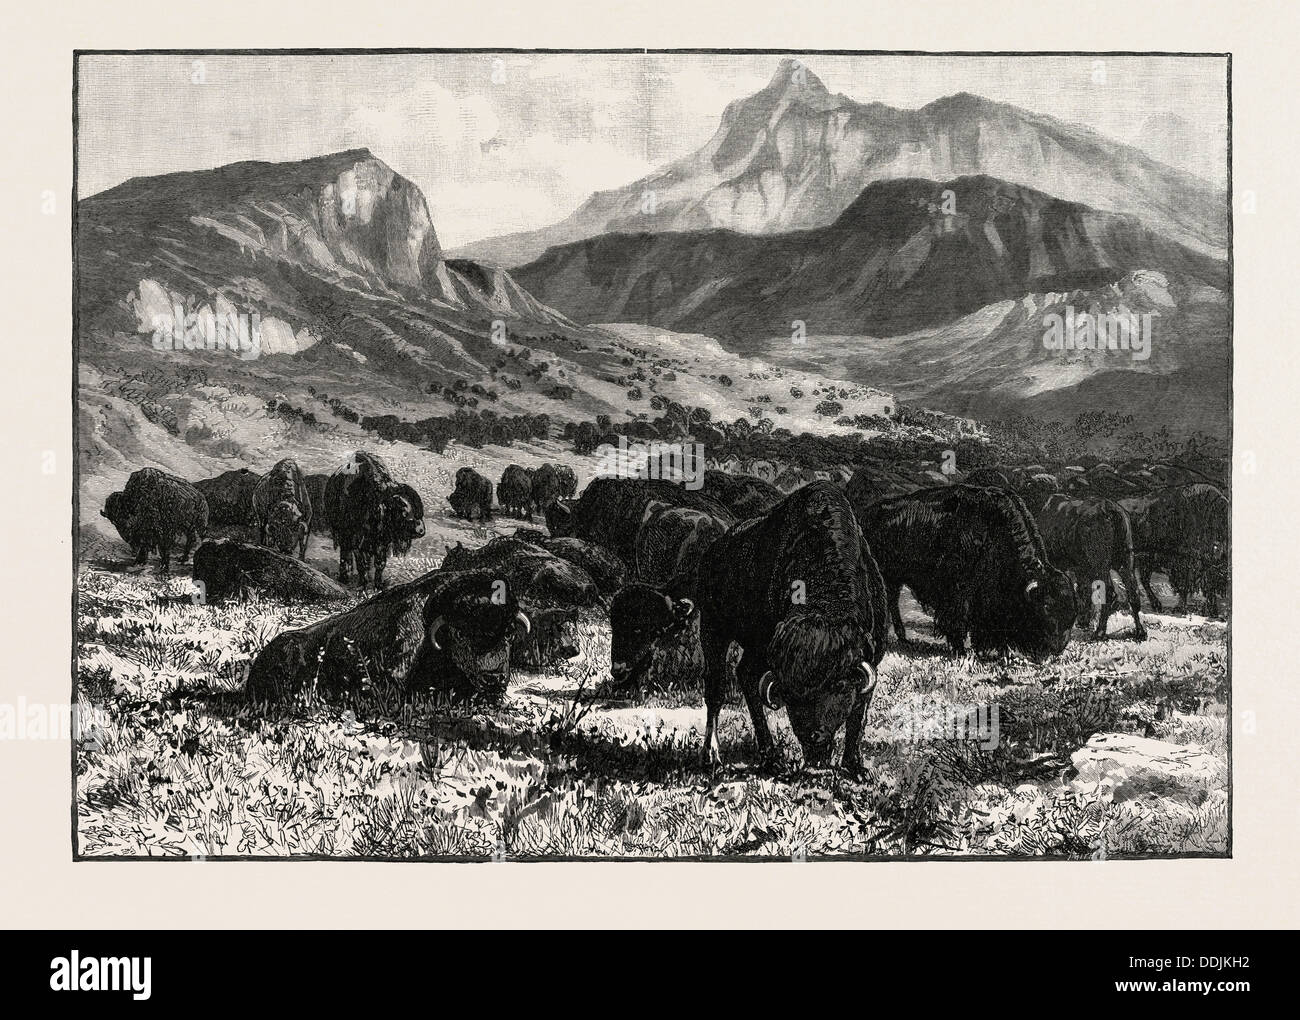 AT THE FOOTHILLS OF THE ROCKY MOUNTAINS, CANADA, NINETEENTH CENTURY ENGRAVING - Stock Image